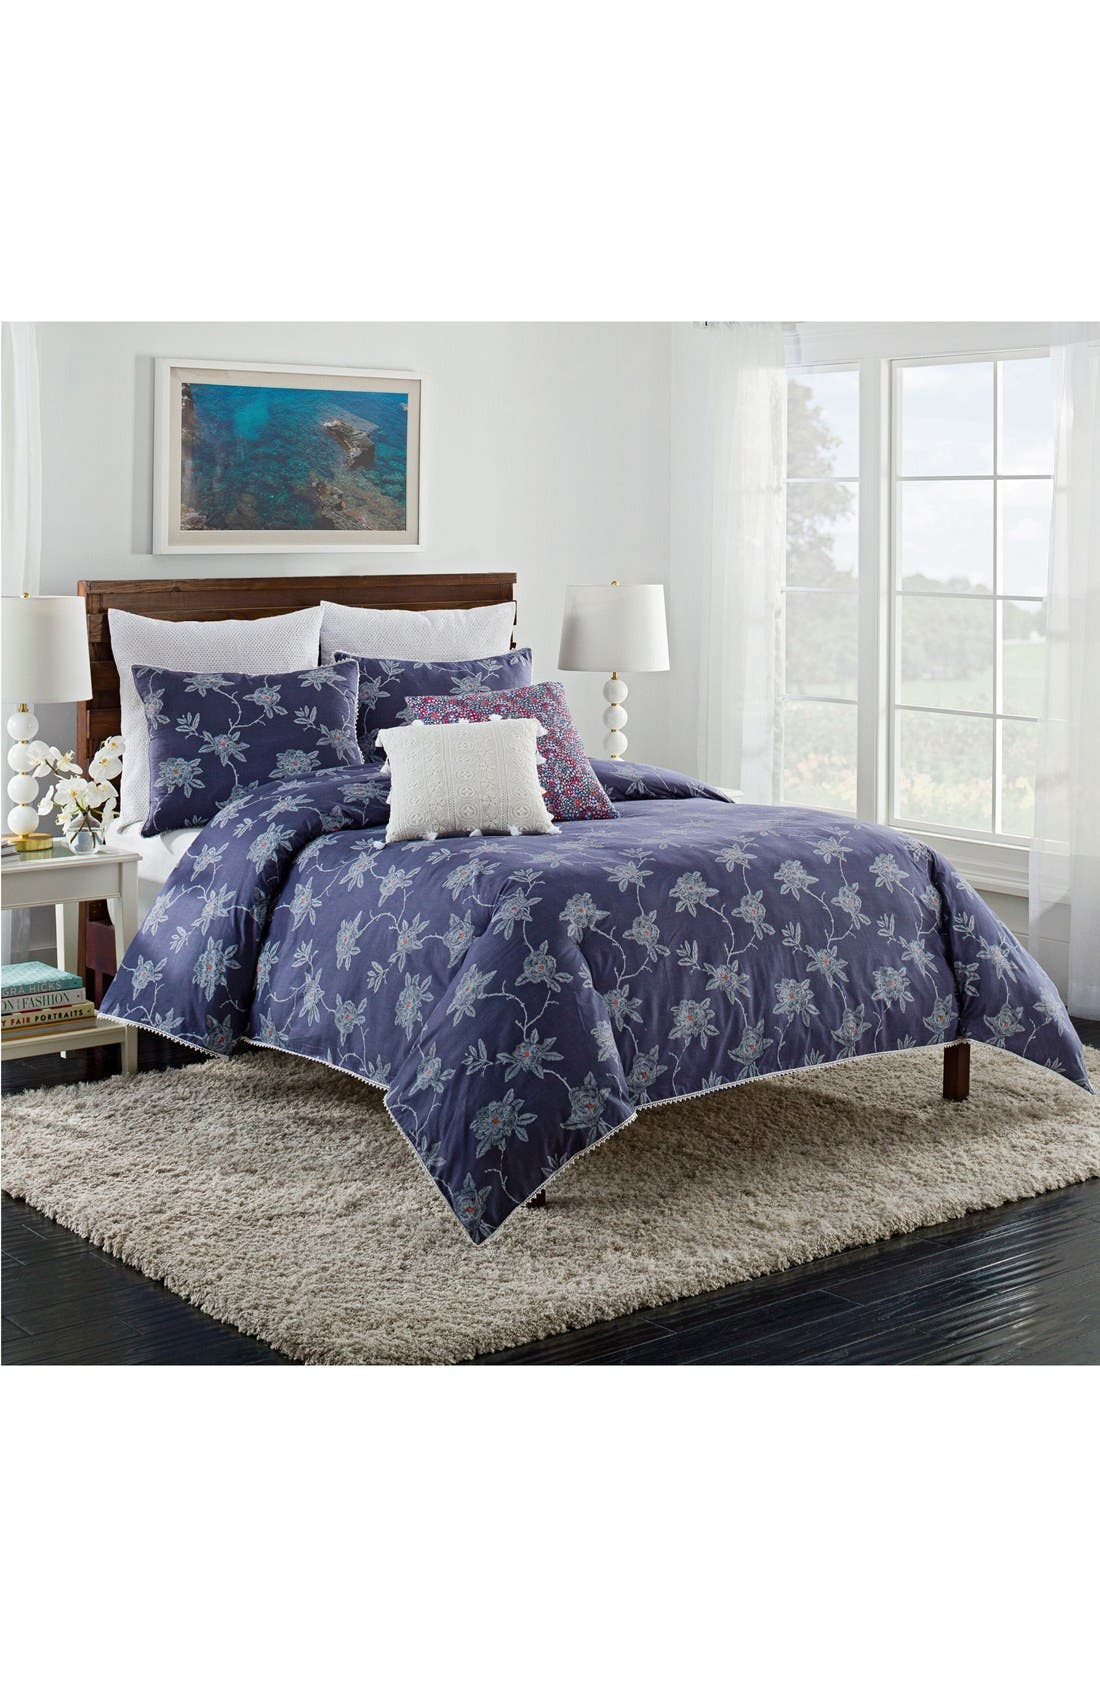 cupcakes and cashmere 'Sketch' Bedding Collection